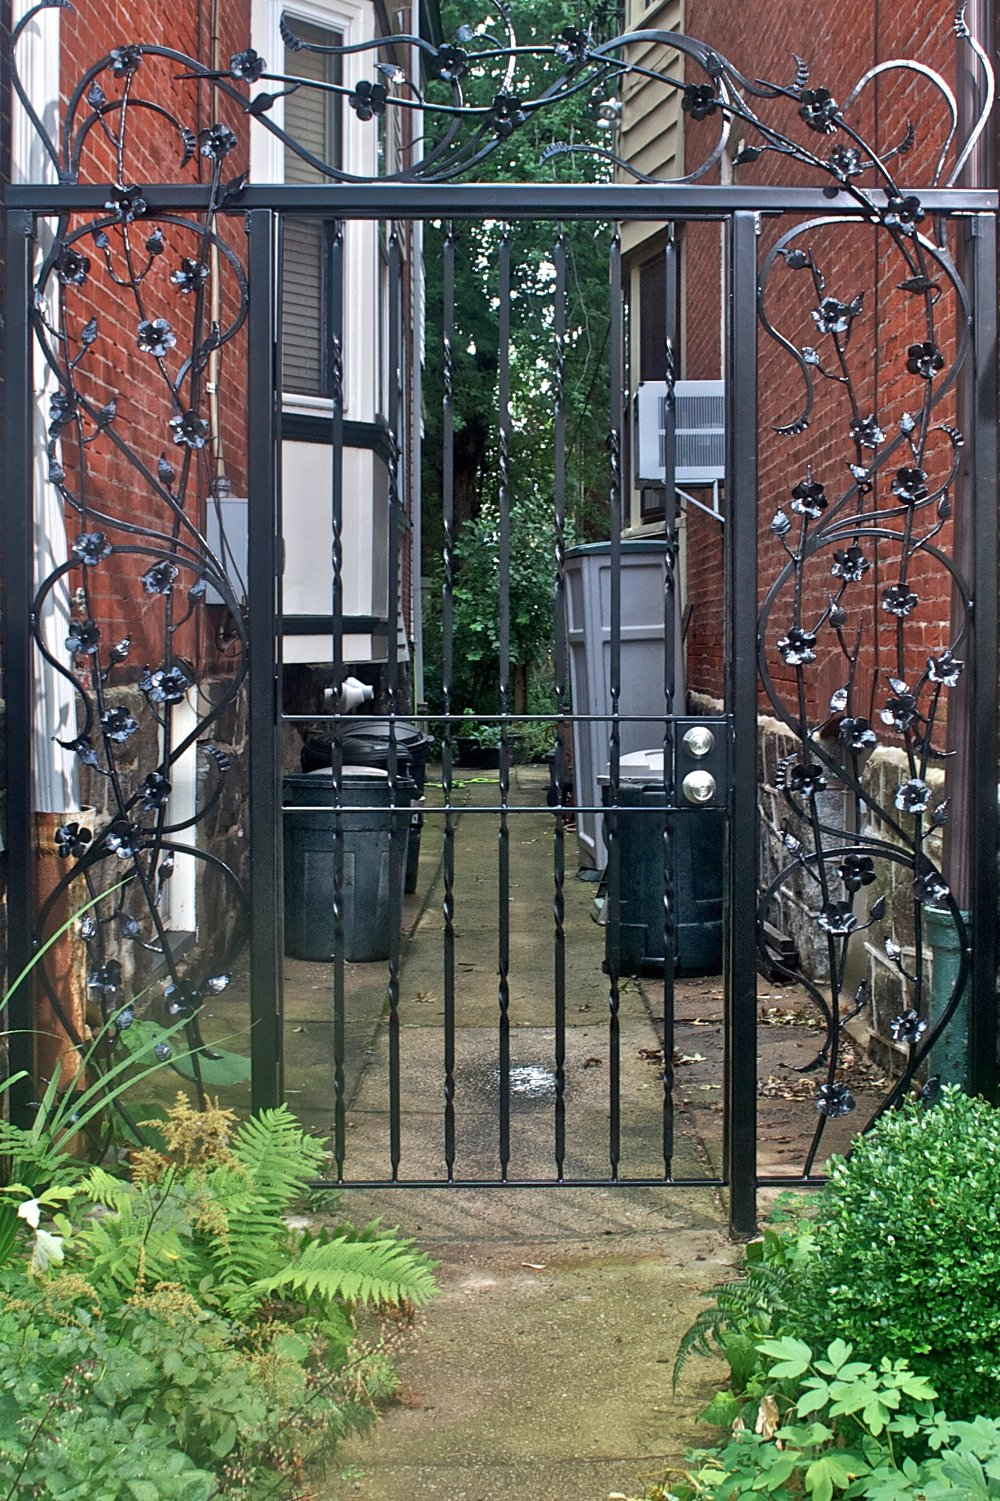 DOGWOOD GATE - private residence, Florence St. Philadelphia, PA